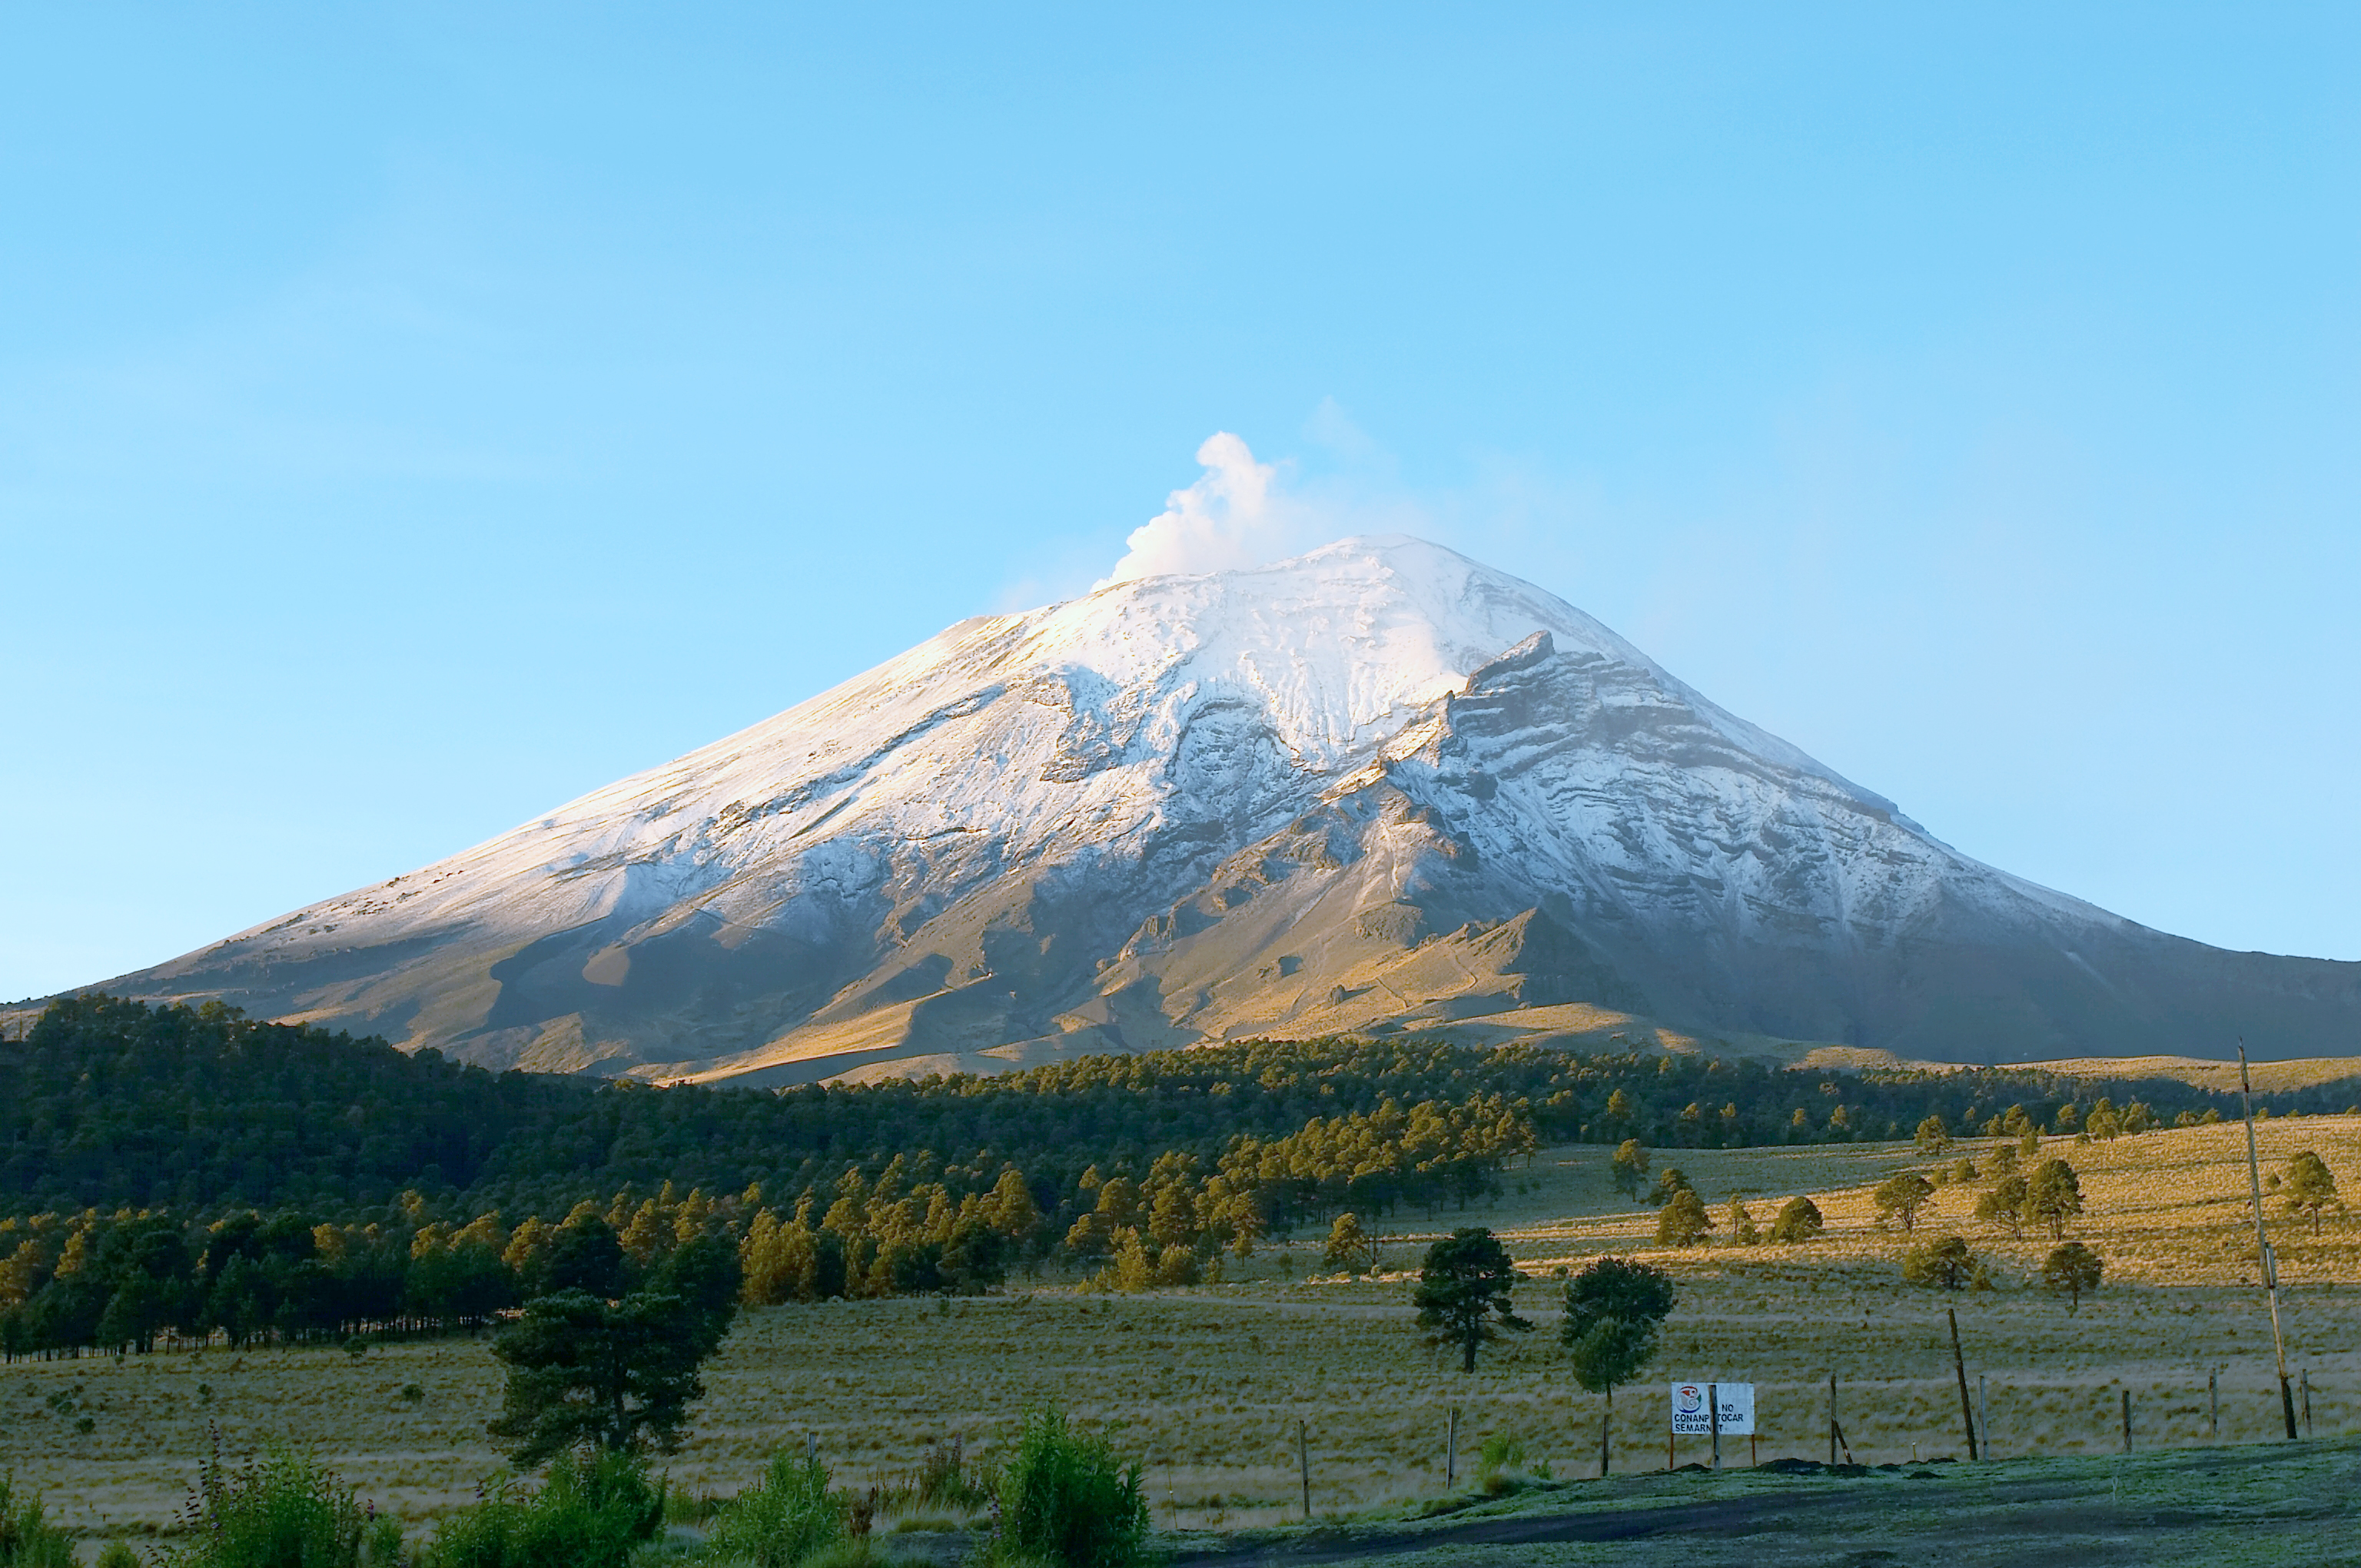 https://upload.wikimedia.org/wikipedia/commons/a/a5/Mexico-Popocatepetl.jpg